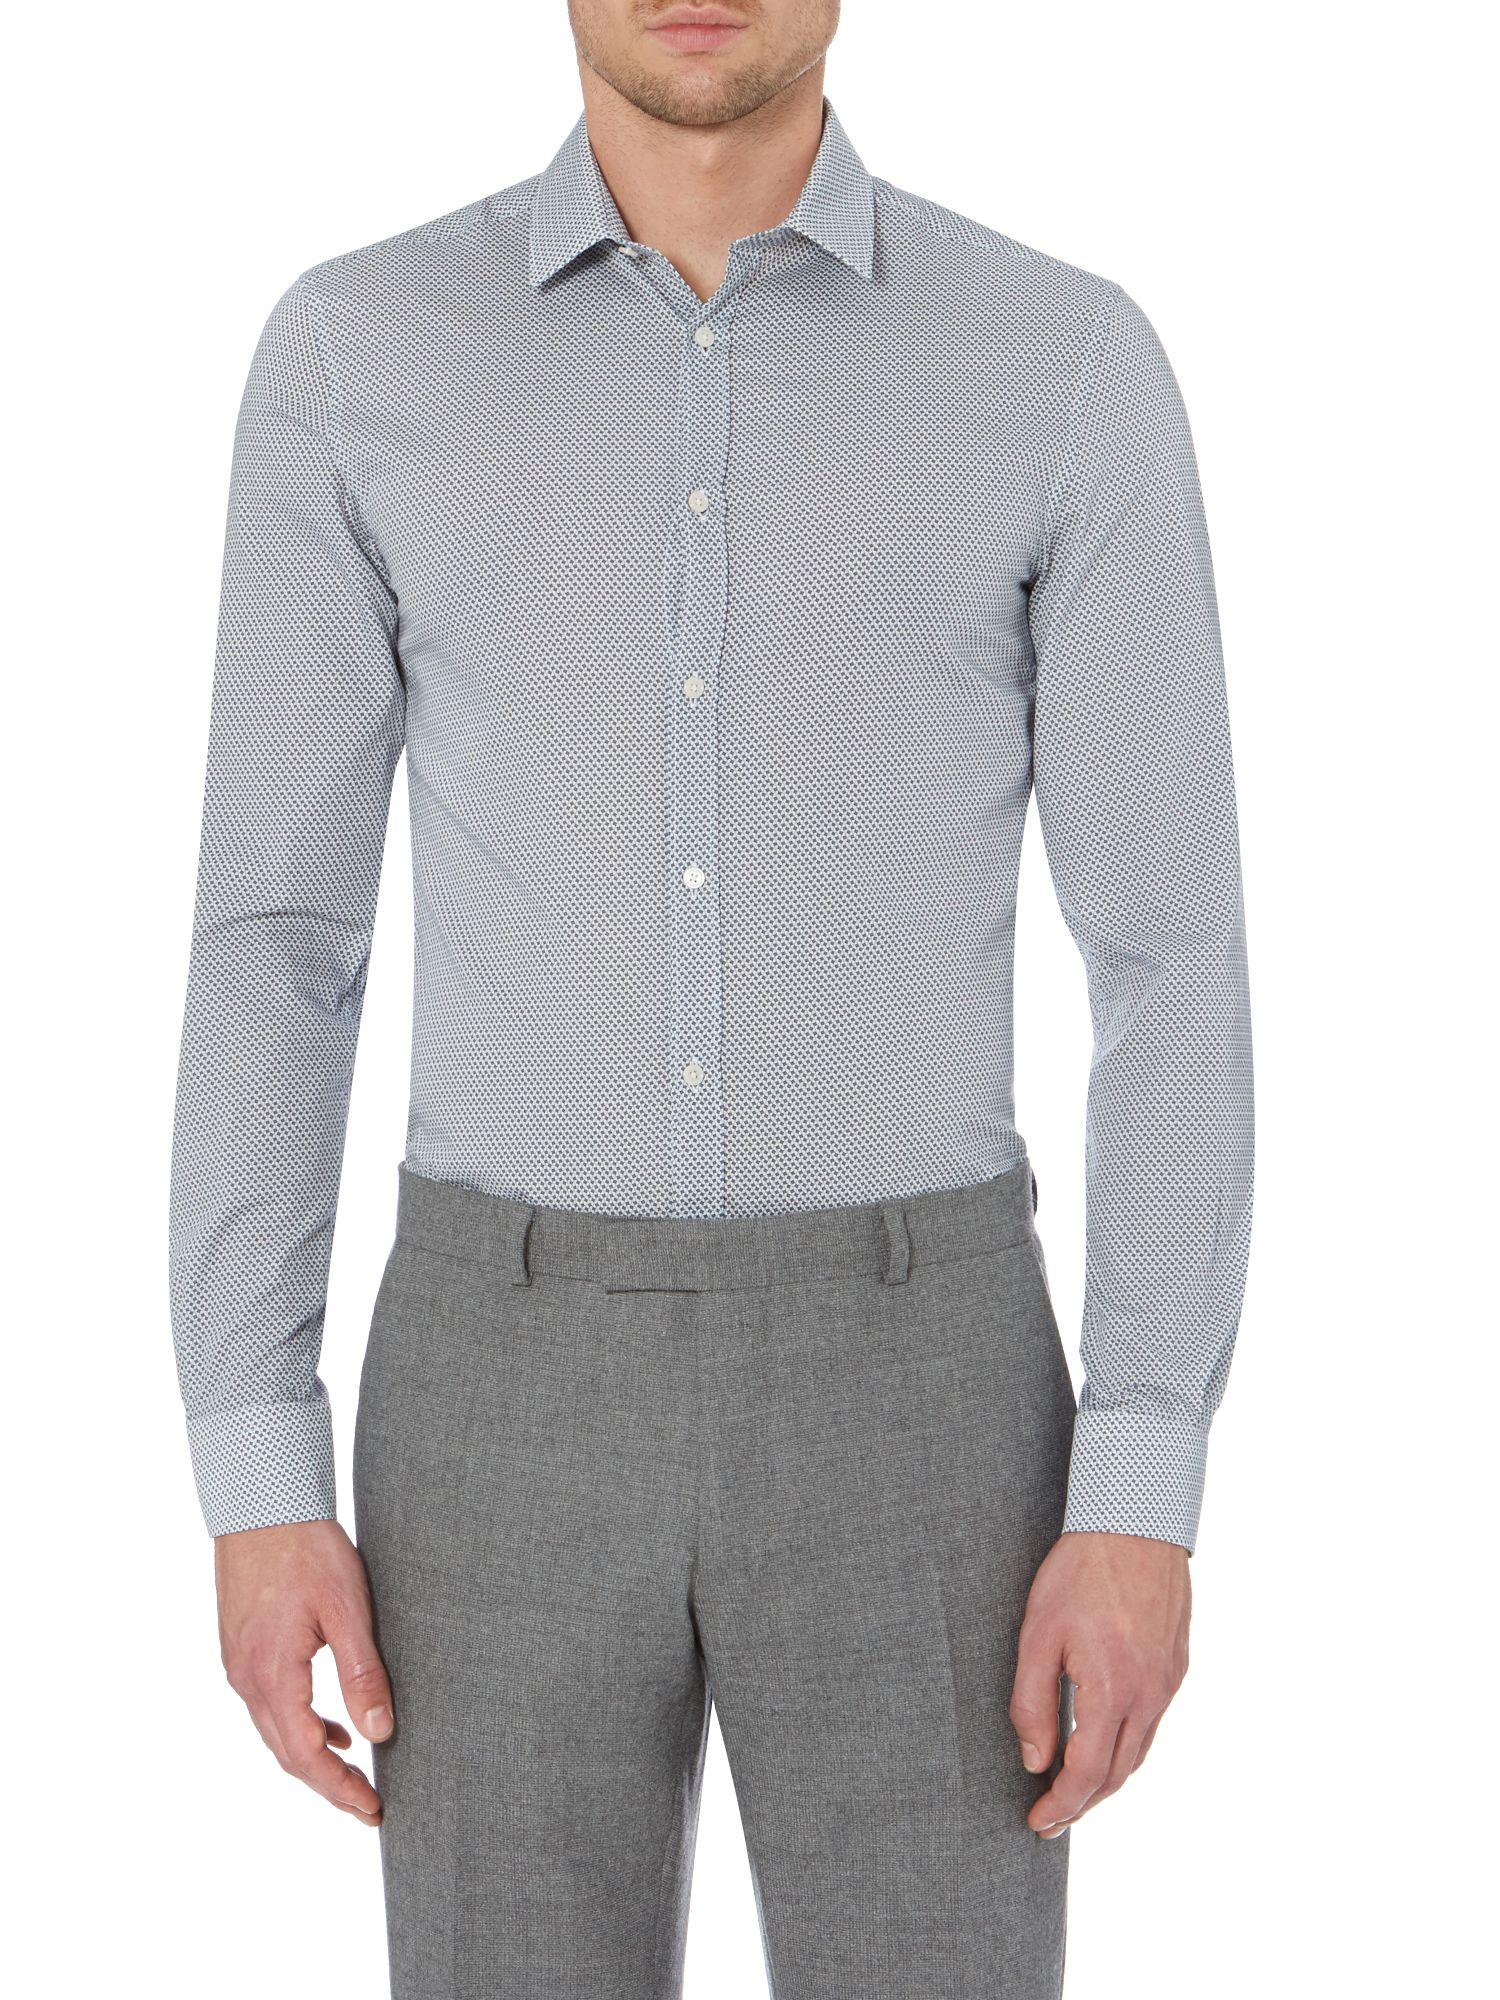 Temple square geo print stretch shirt